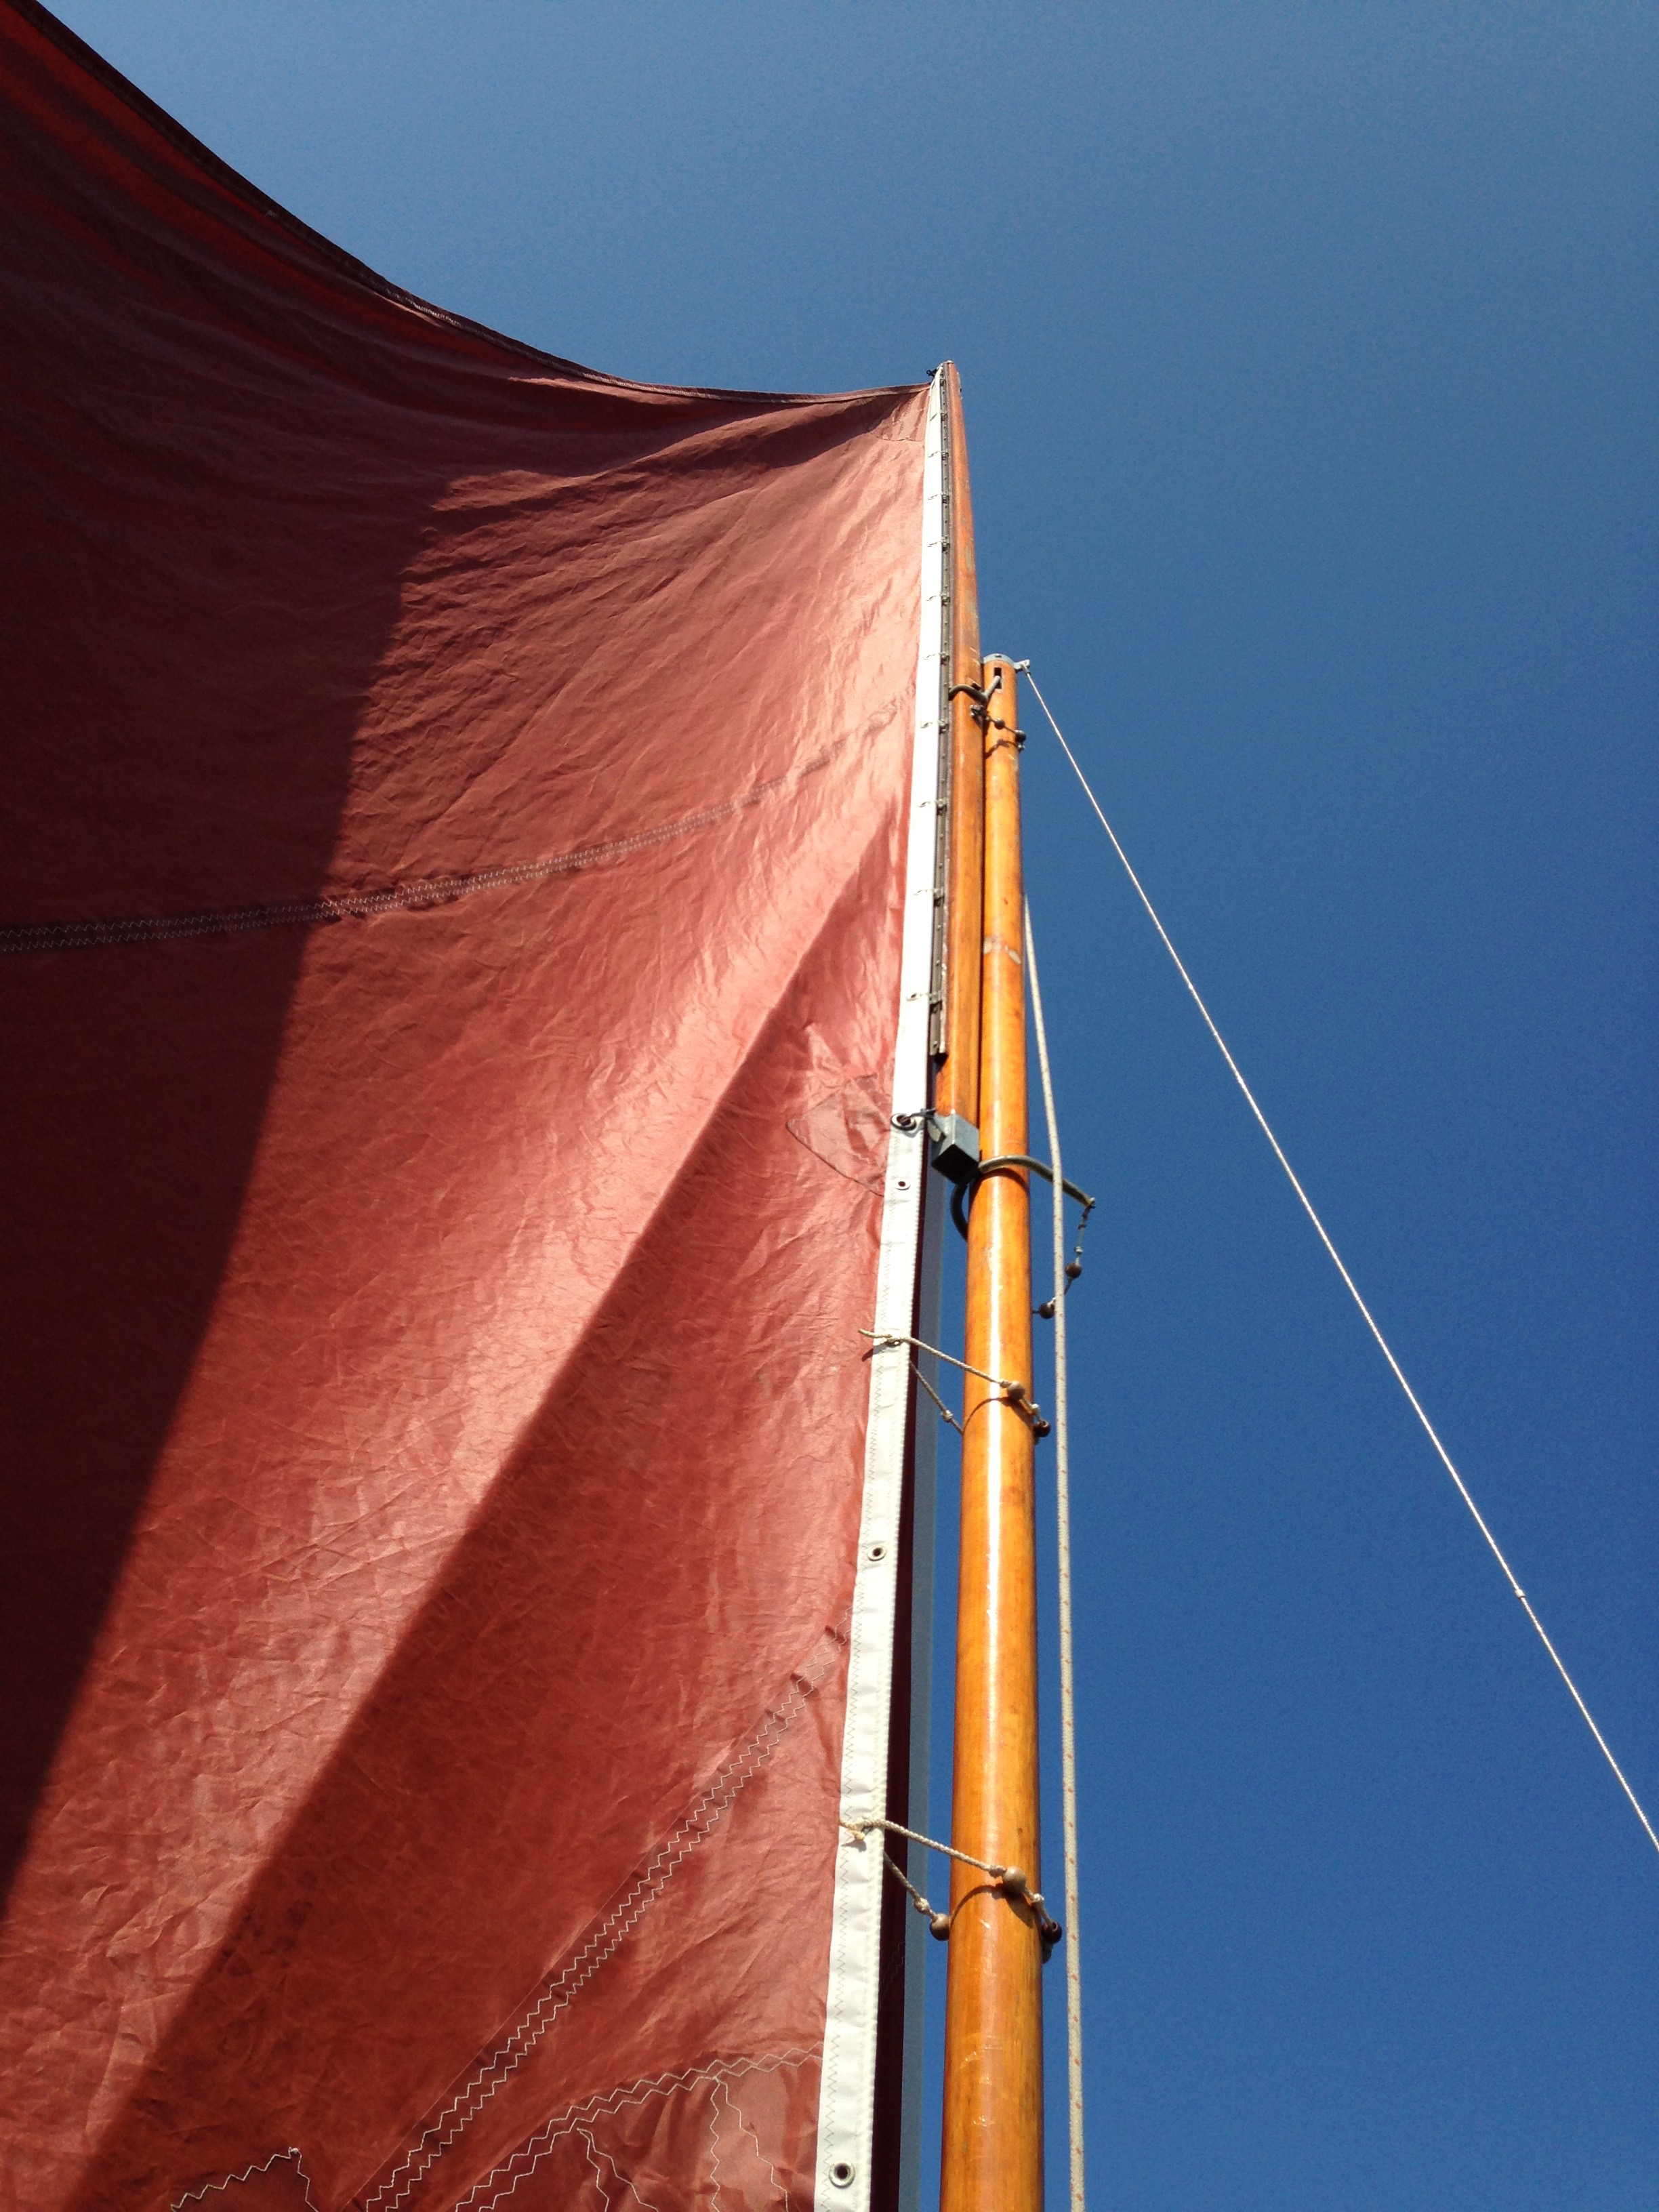 Gunter Wikipedia Marine Wiring Diagrams Sailboat Mast Sliding Sail Rig On Drascombe Lugger Onkahye